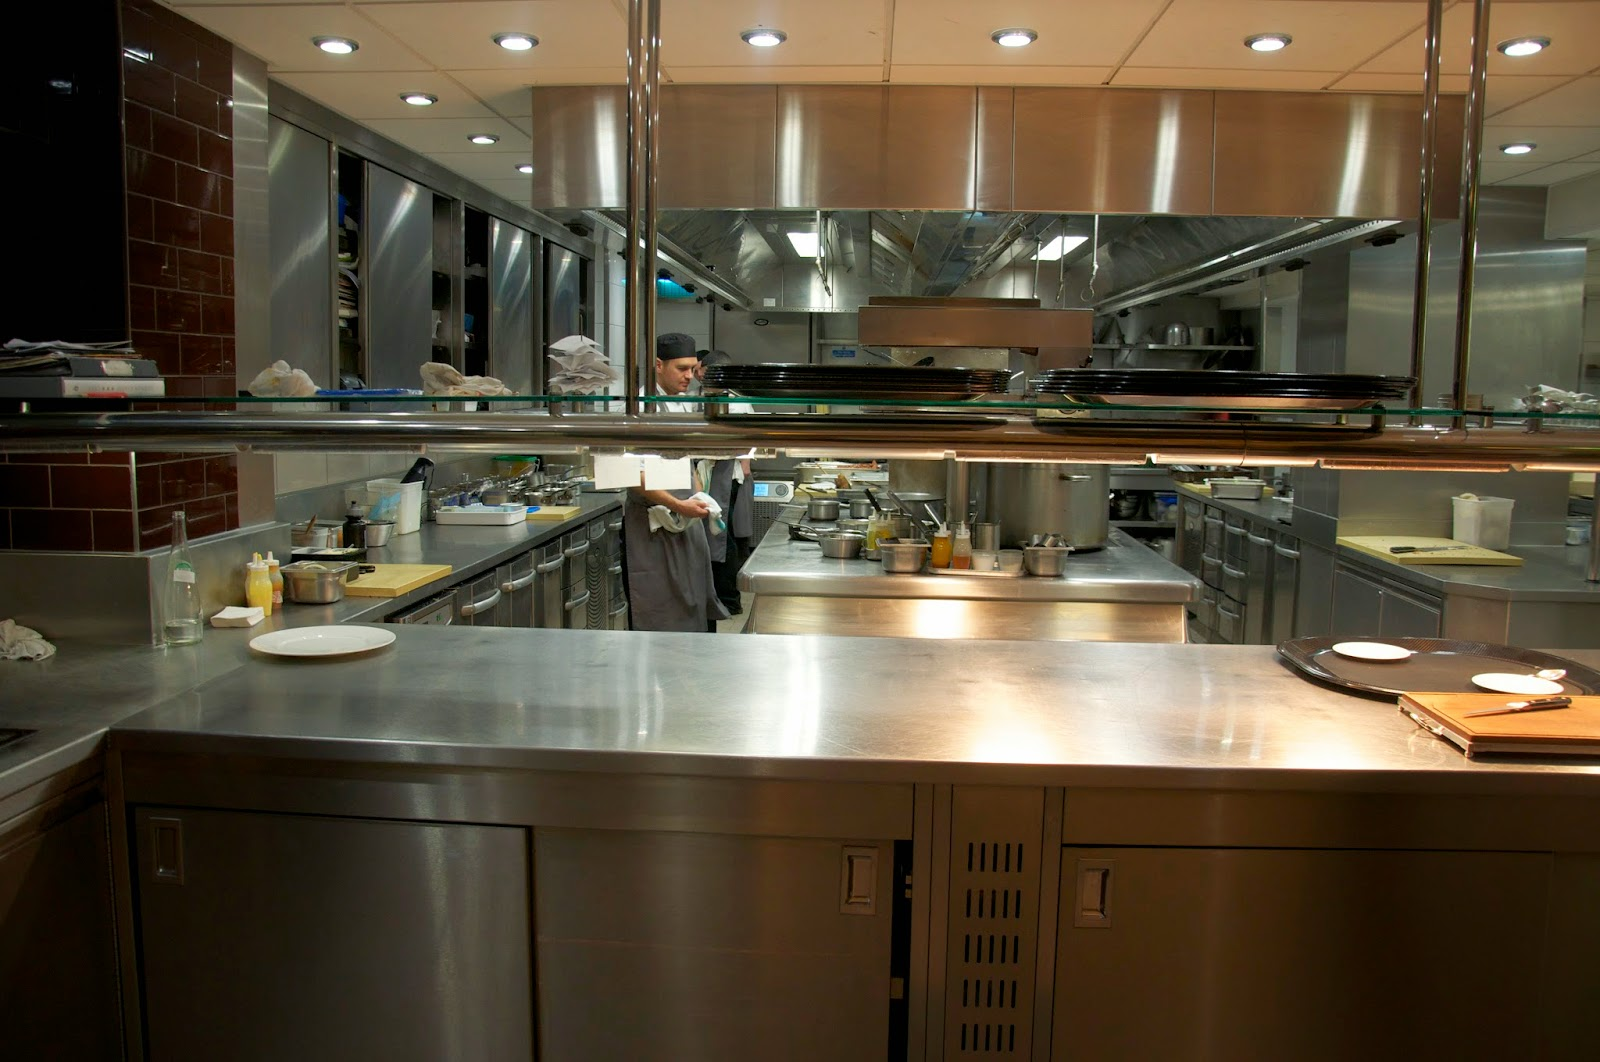 Home decoration restaurant kitchen for Kitchen 8 restaurant